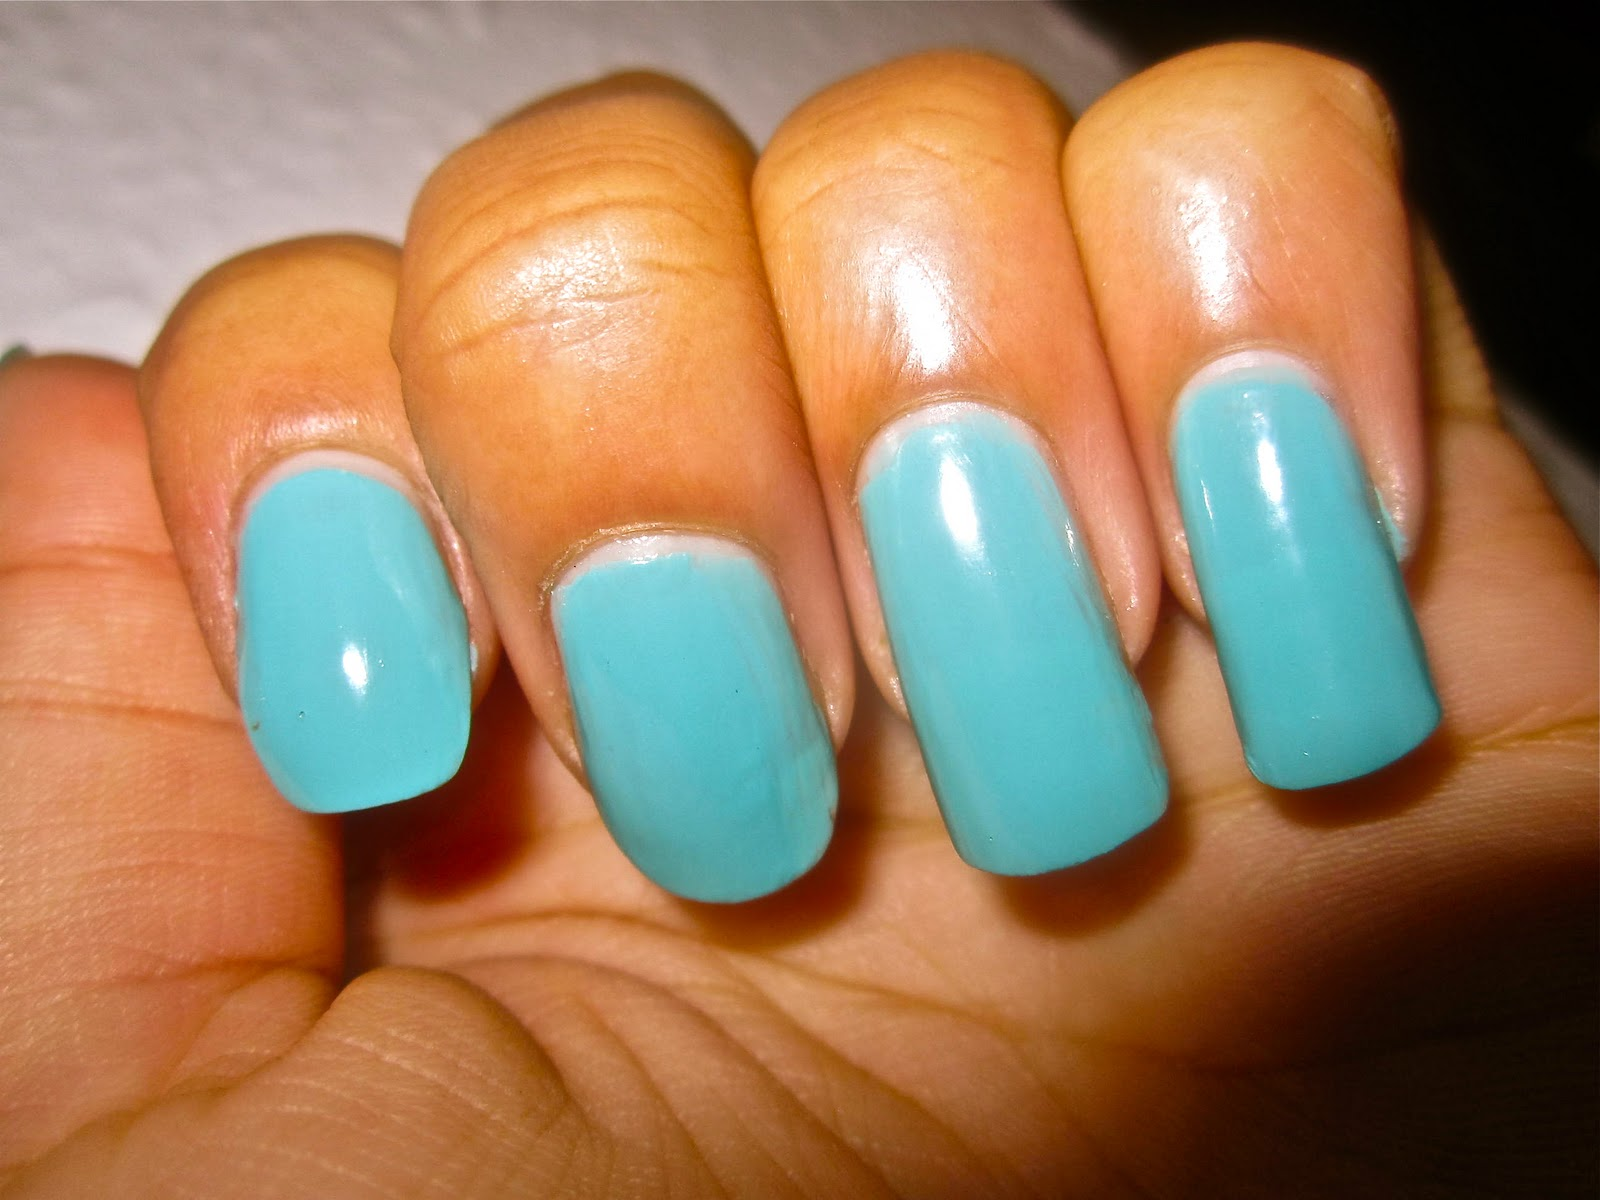 Yolanda G: ♥ Long natural nails